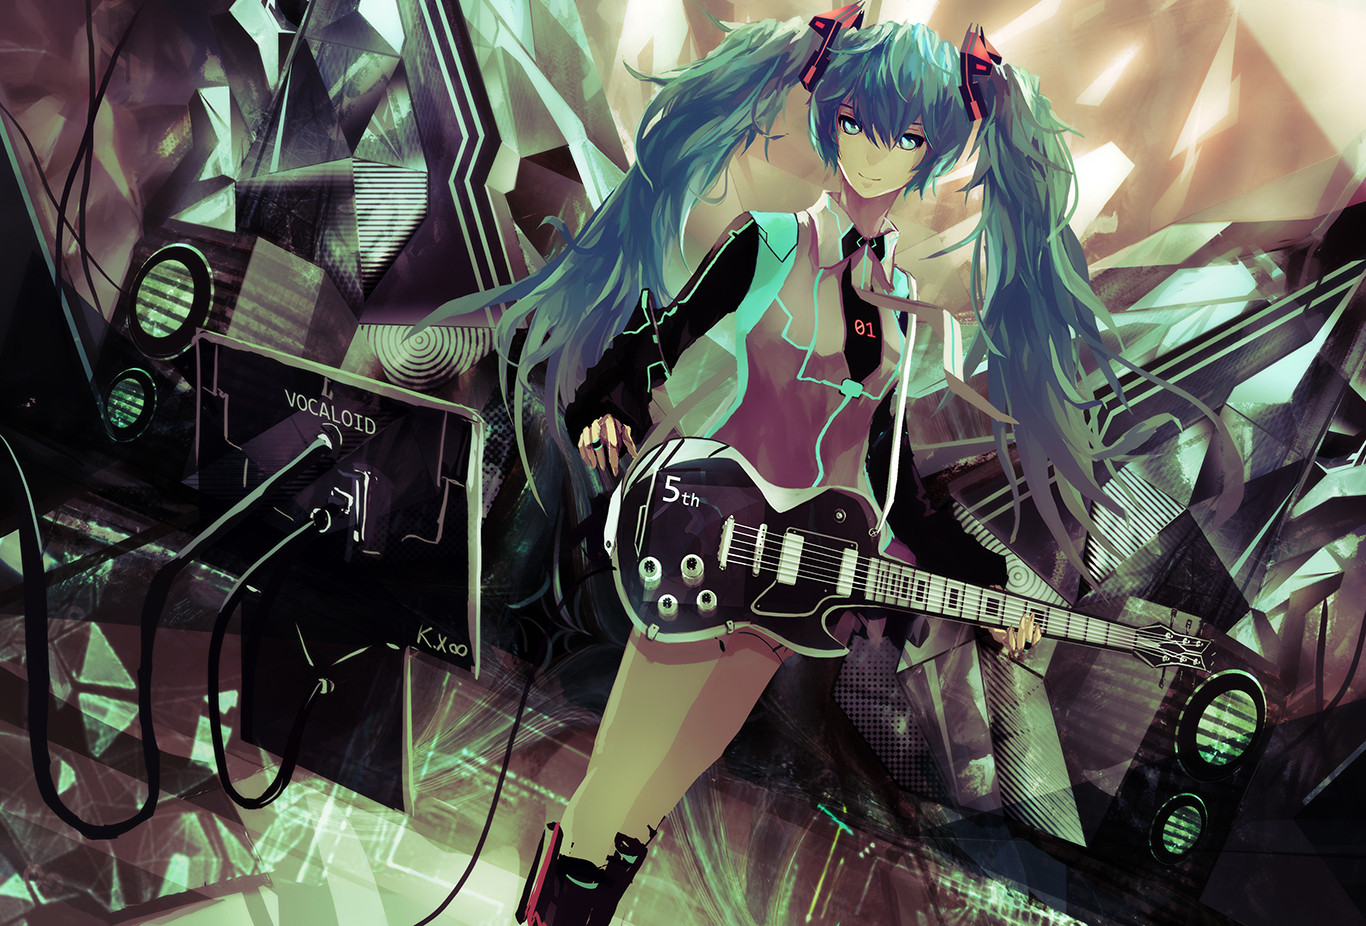 Goth Girl Wallpaper 1440x2960 Vocaloid Wallpaper And Background Image 1366x926 Id 328277